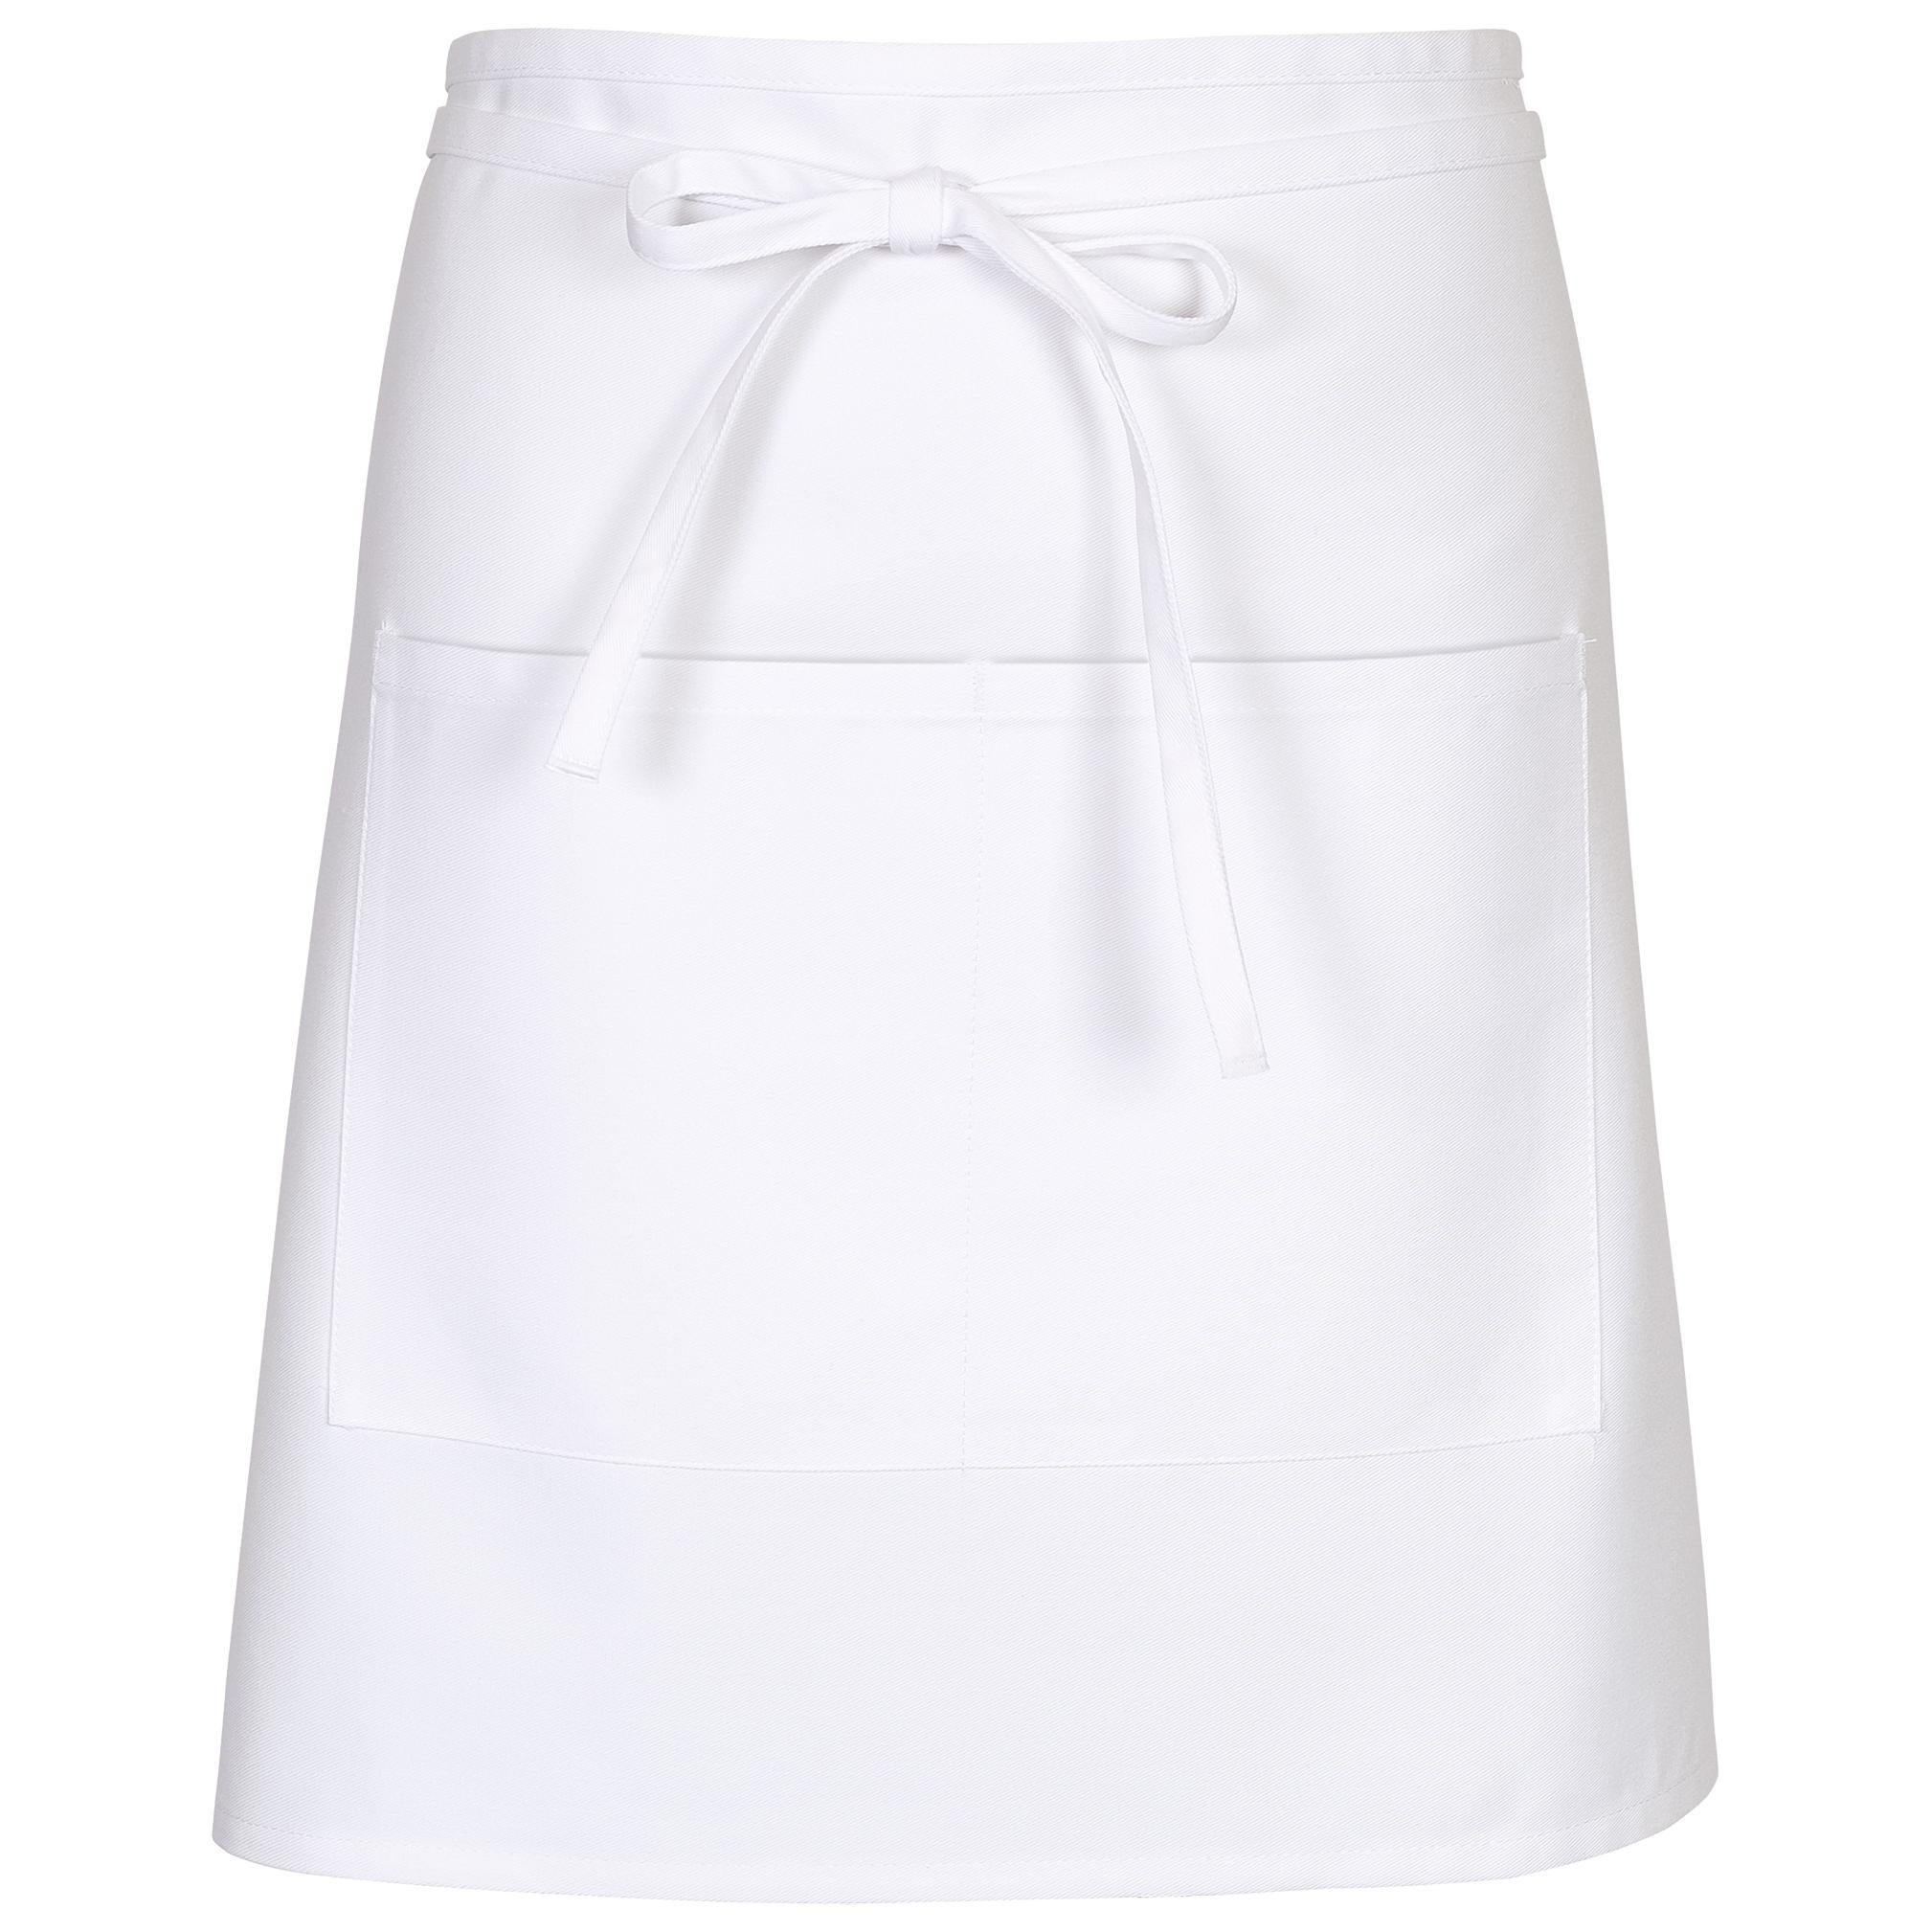 Chef Works Mens Half Bistro Server Apron, White, 19-Inch Length by 30-Inch Width